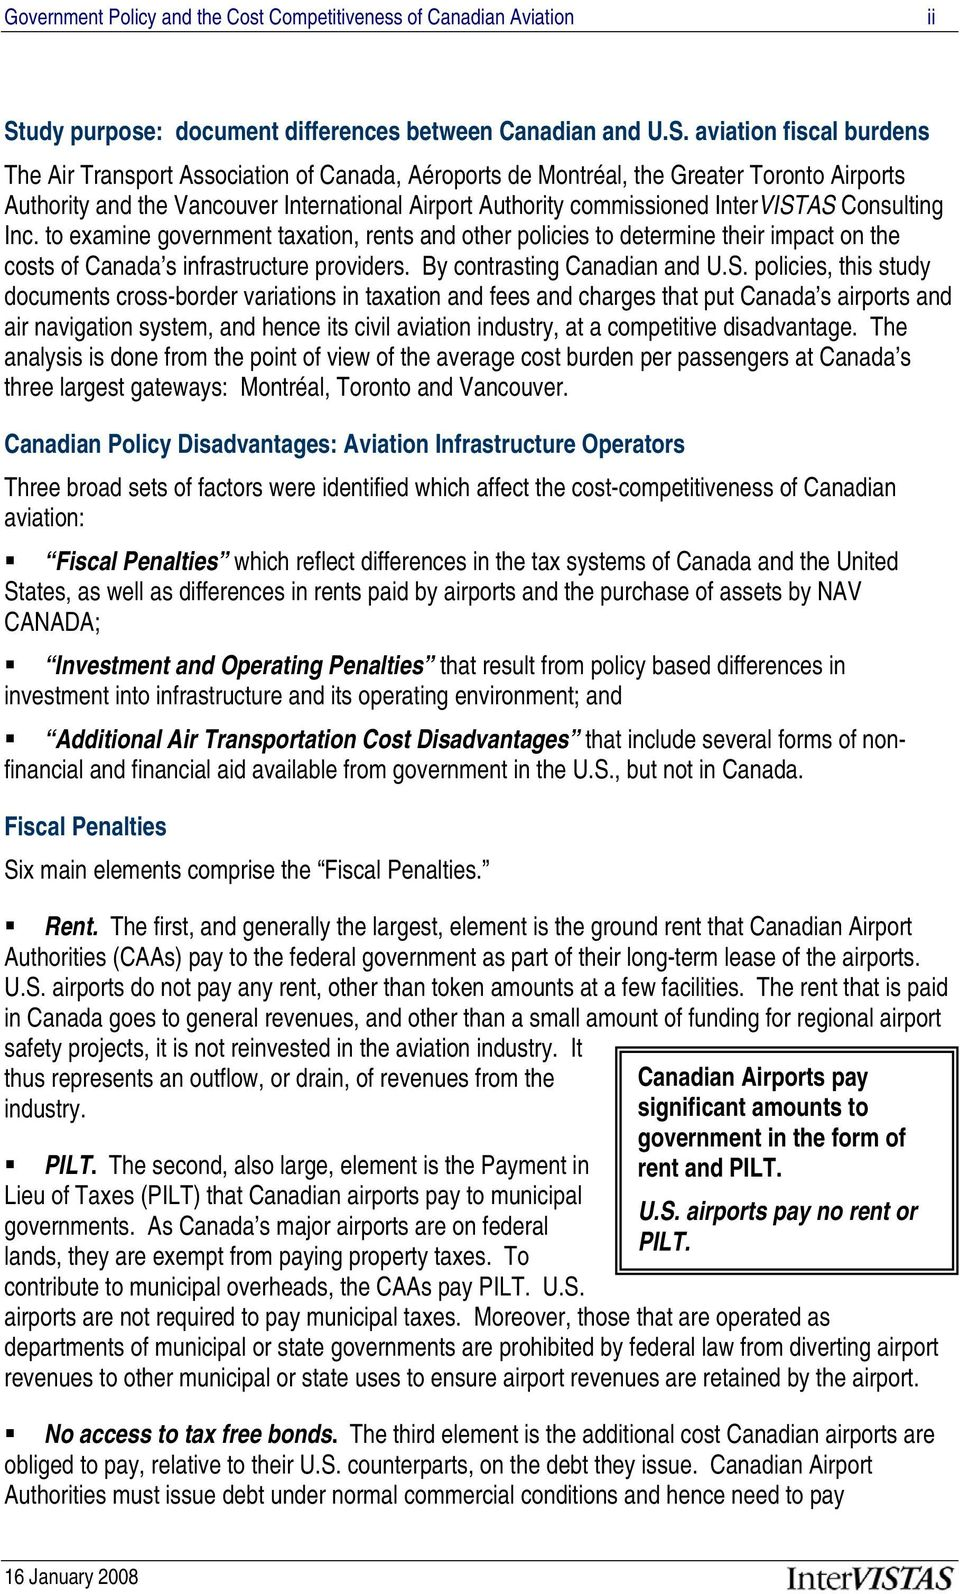 aviation fiscal burdens The Air Transport Association of Canada, Aéroports de Montréal, the Greater Toronto Airports Authority and the Vancouver International Airport Authority commissioned